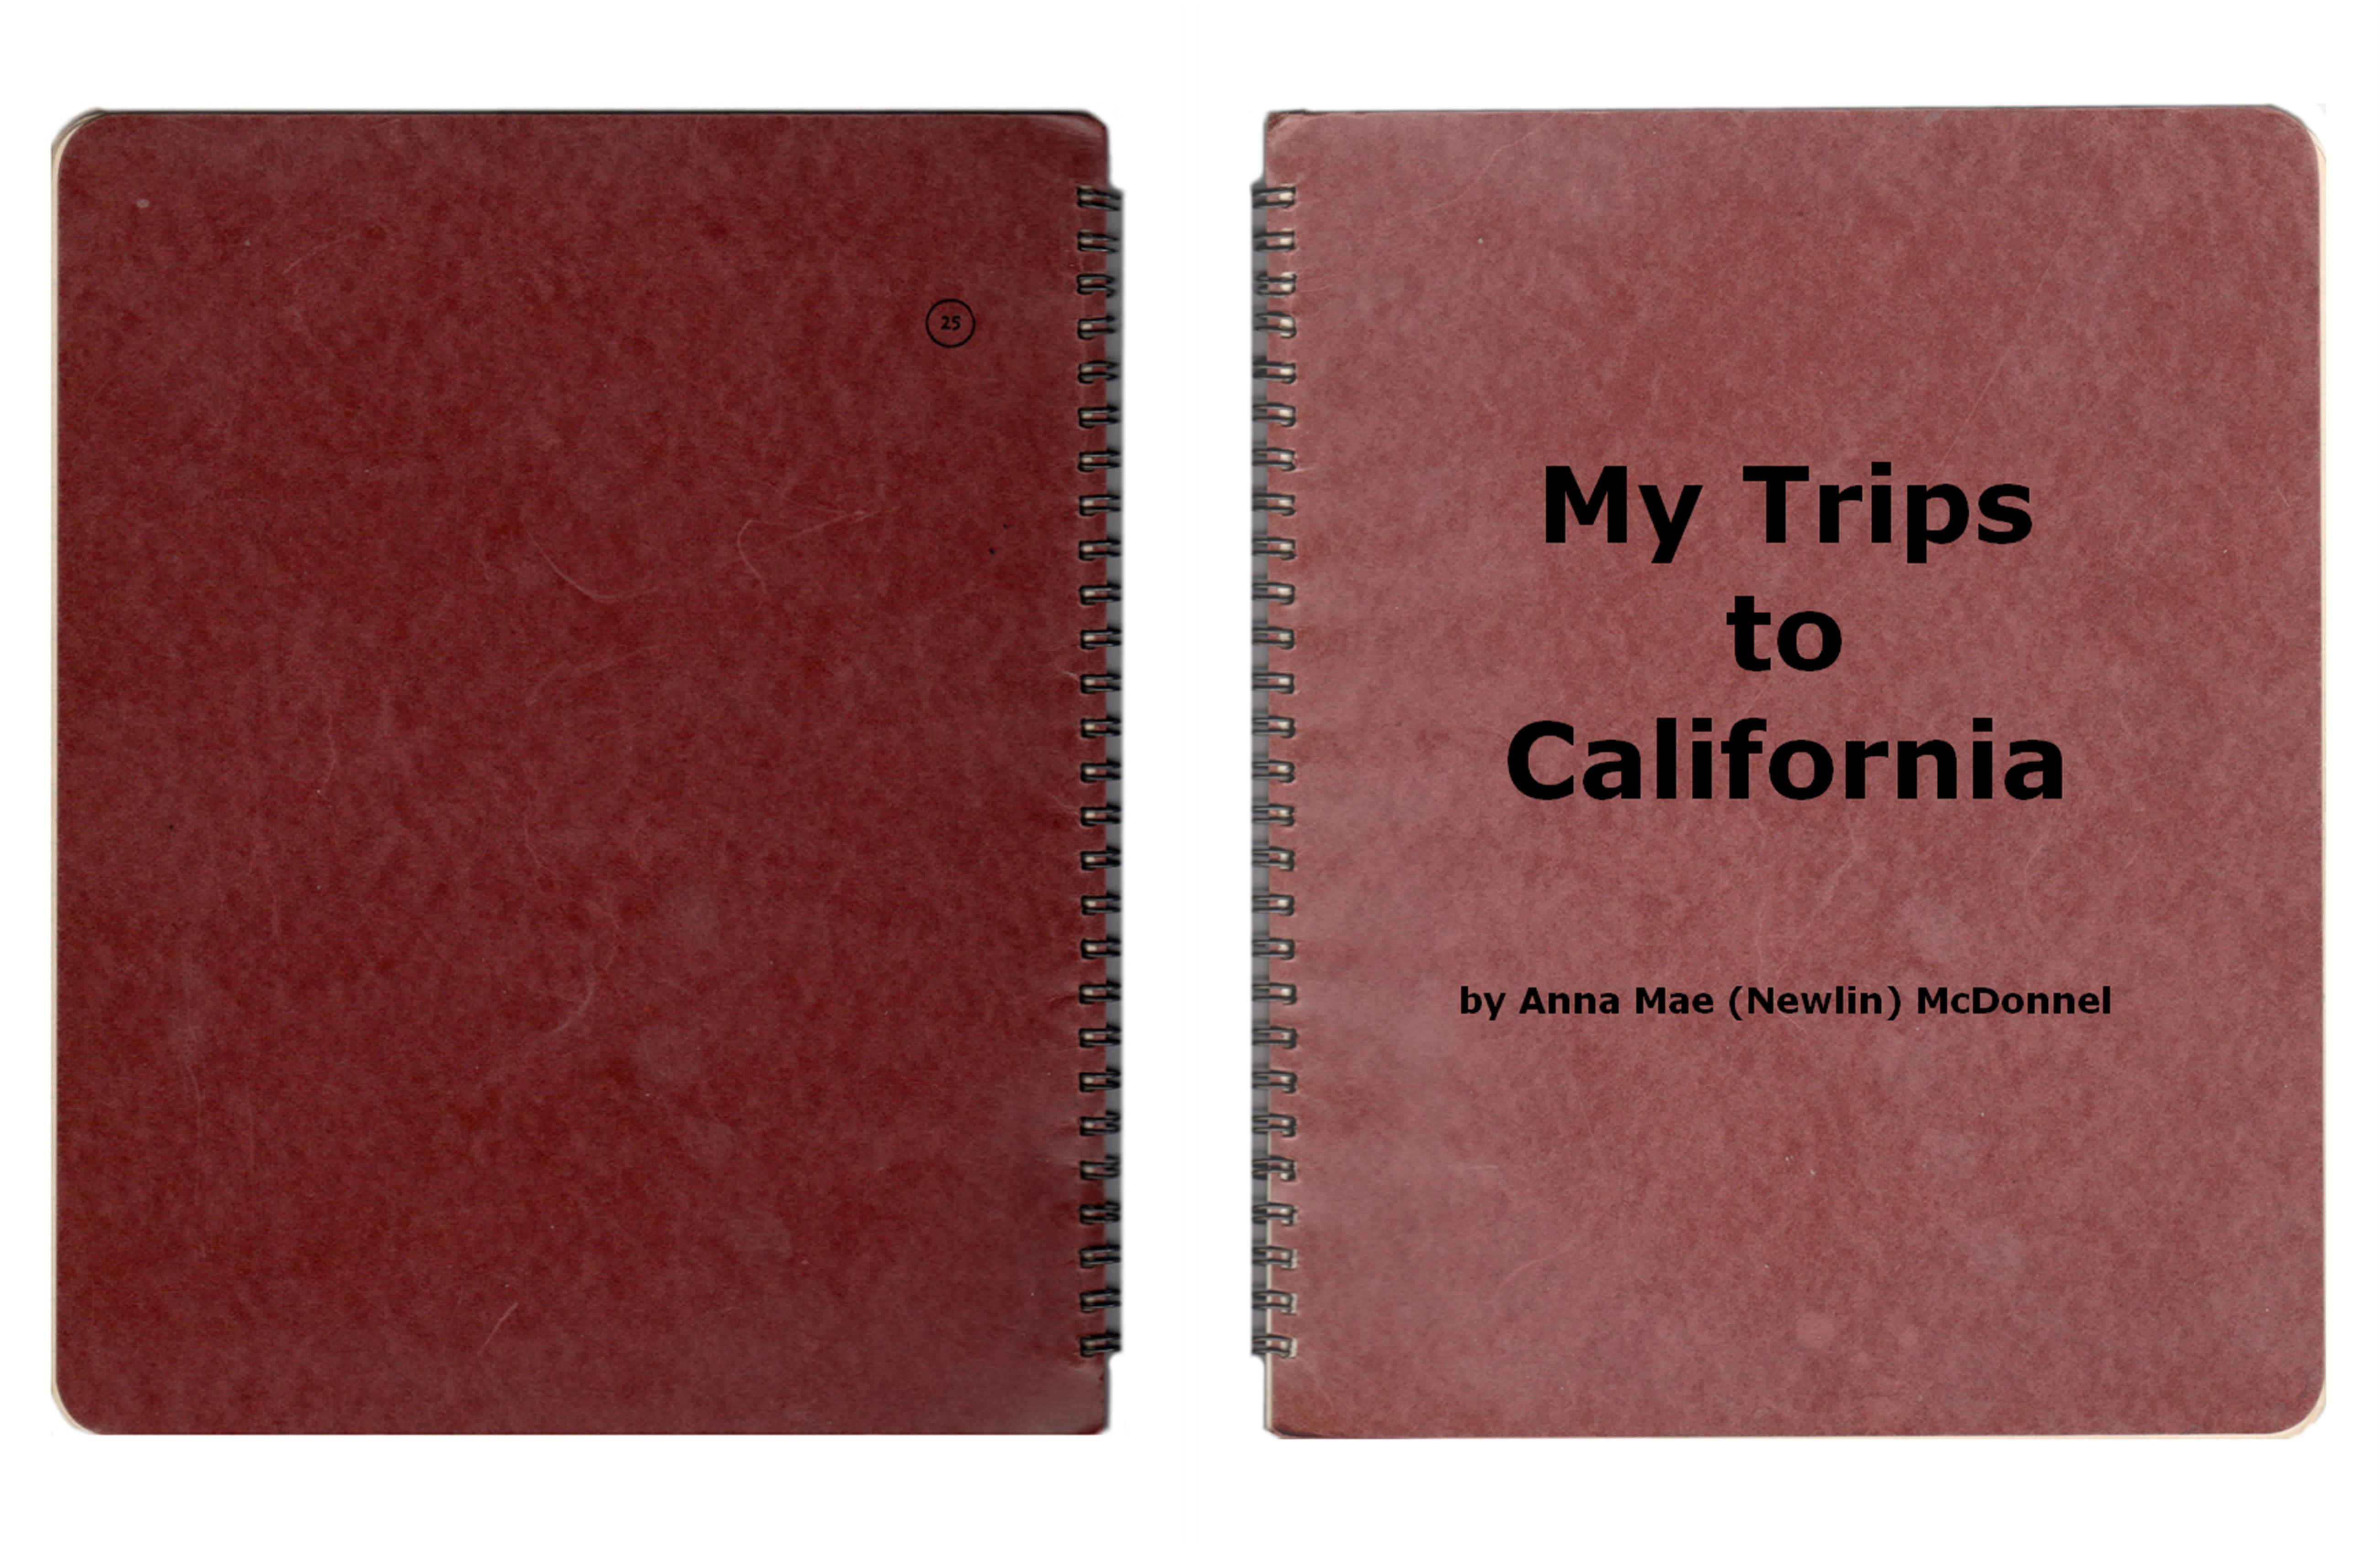 My Trips to California - Anna Mae (Newlin) McDonnel cover image